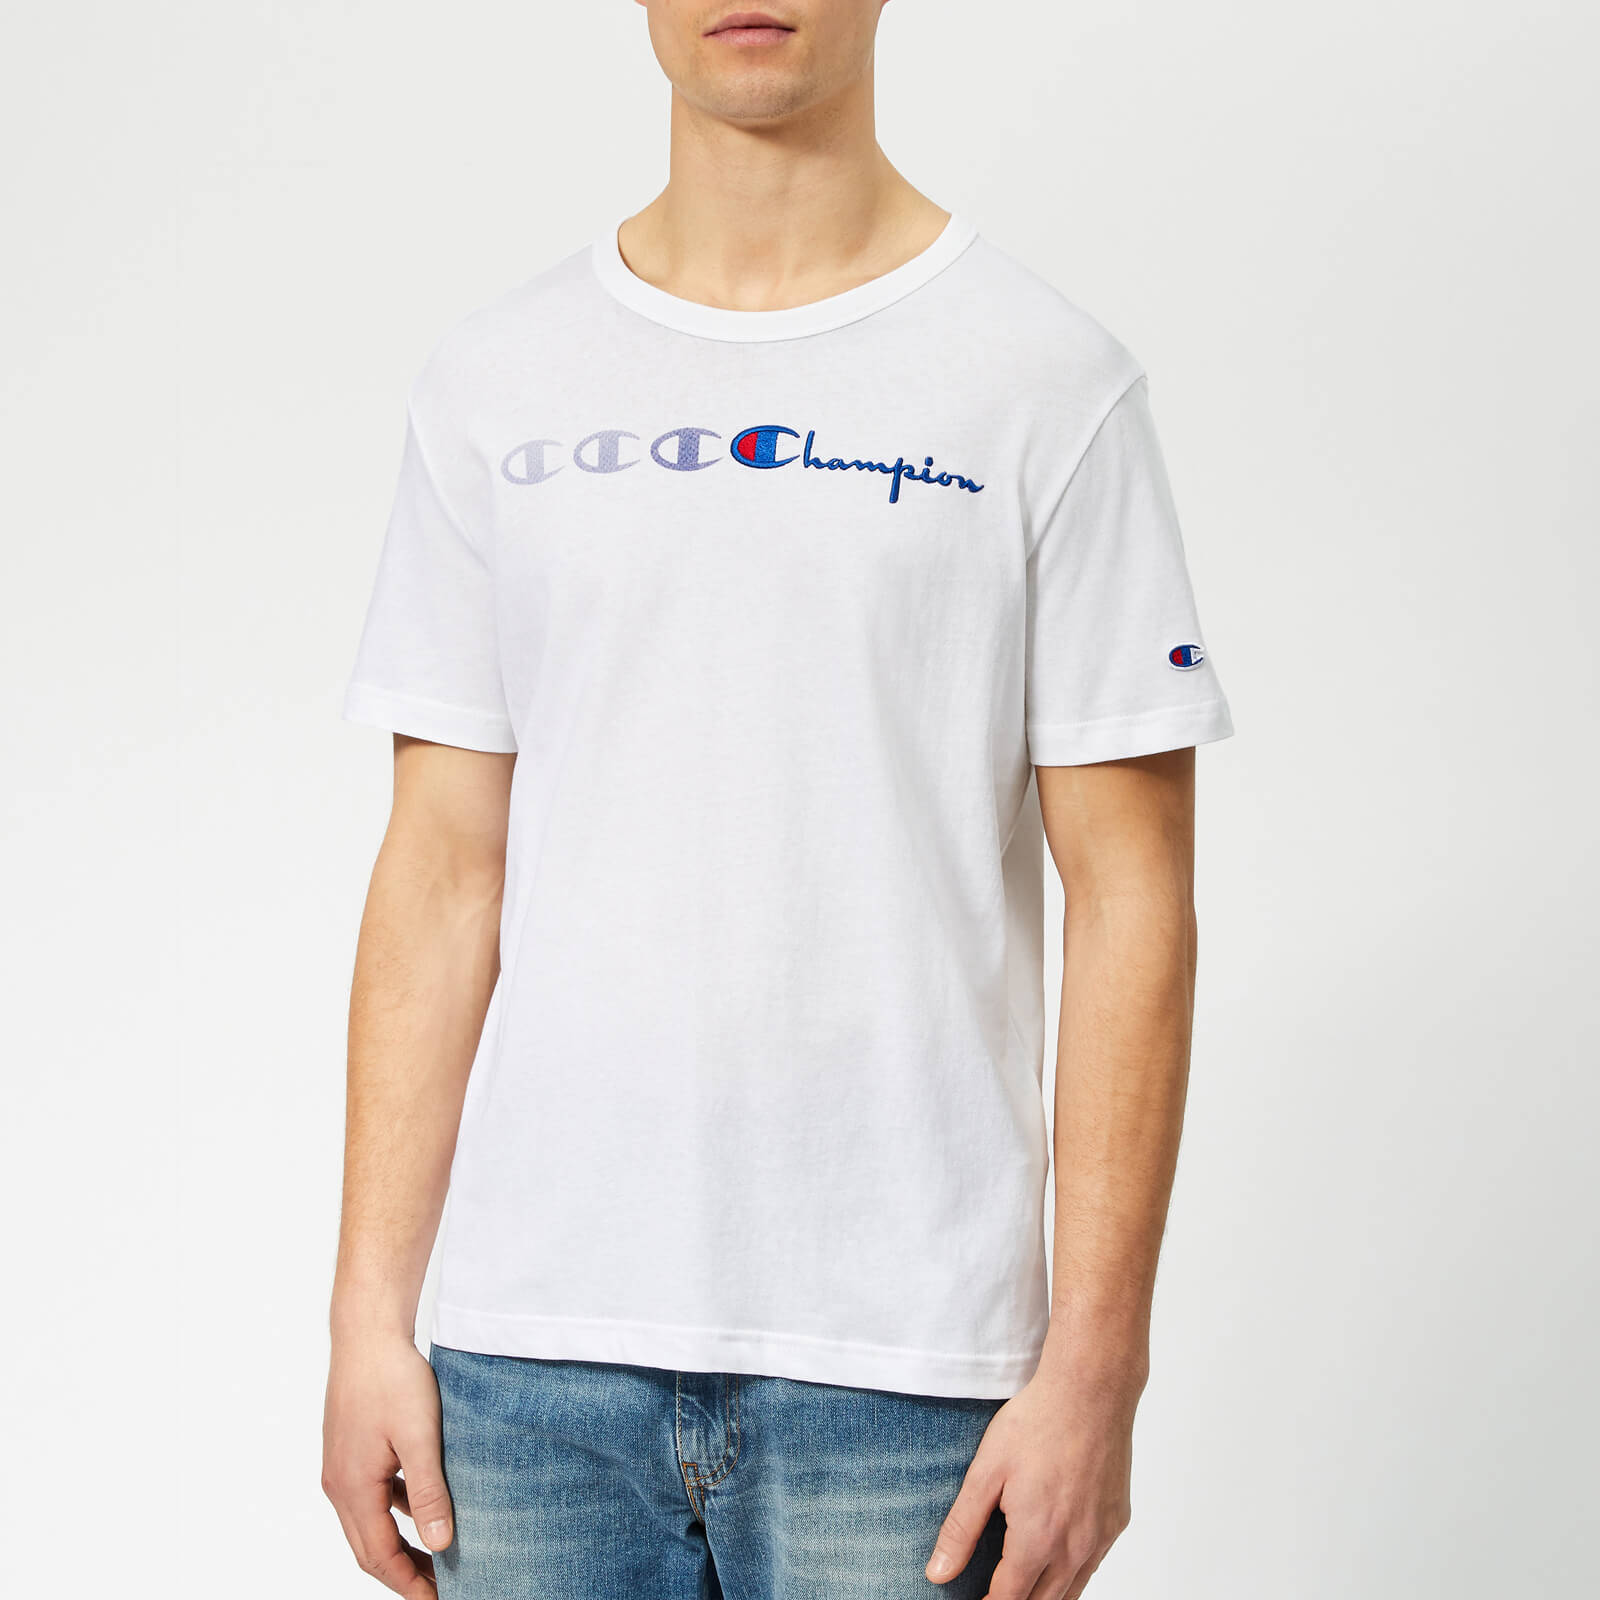 71b3d3b37ca7 Champion Men's Triple Logo T-Shirt - White - Free UK Delivery over £50